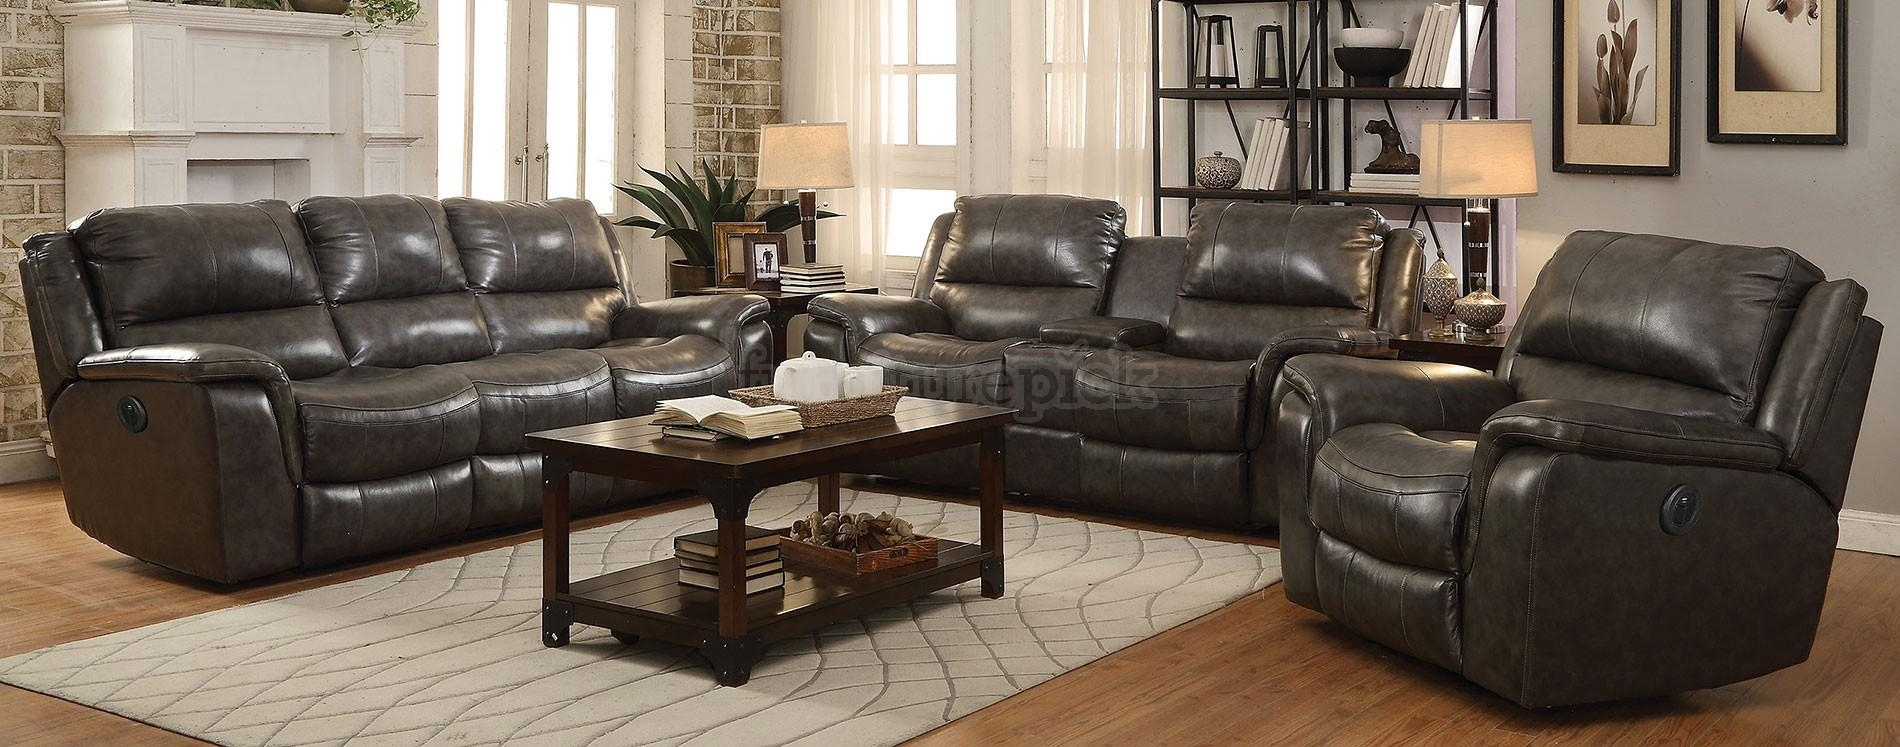 Ashley Living Room Set – Creditrestore Regarding Bradington Truffle (Image 5 of 20)